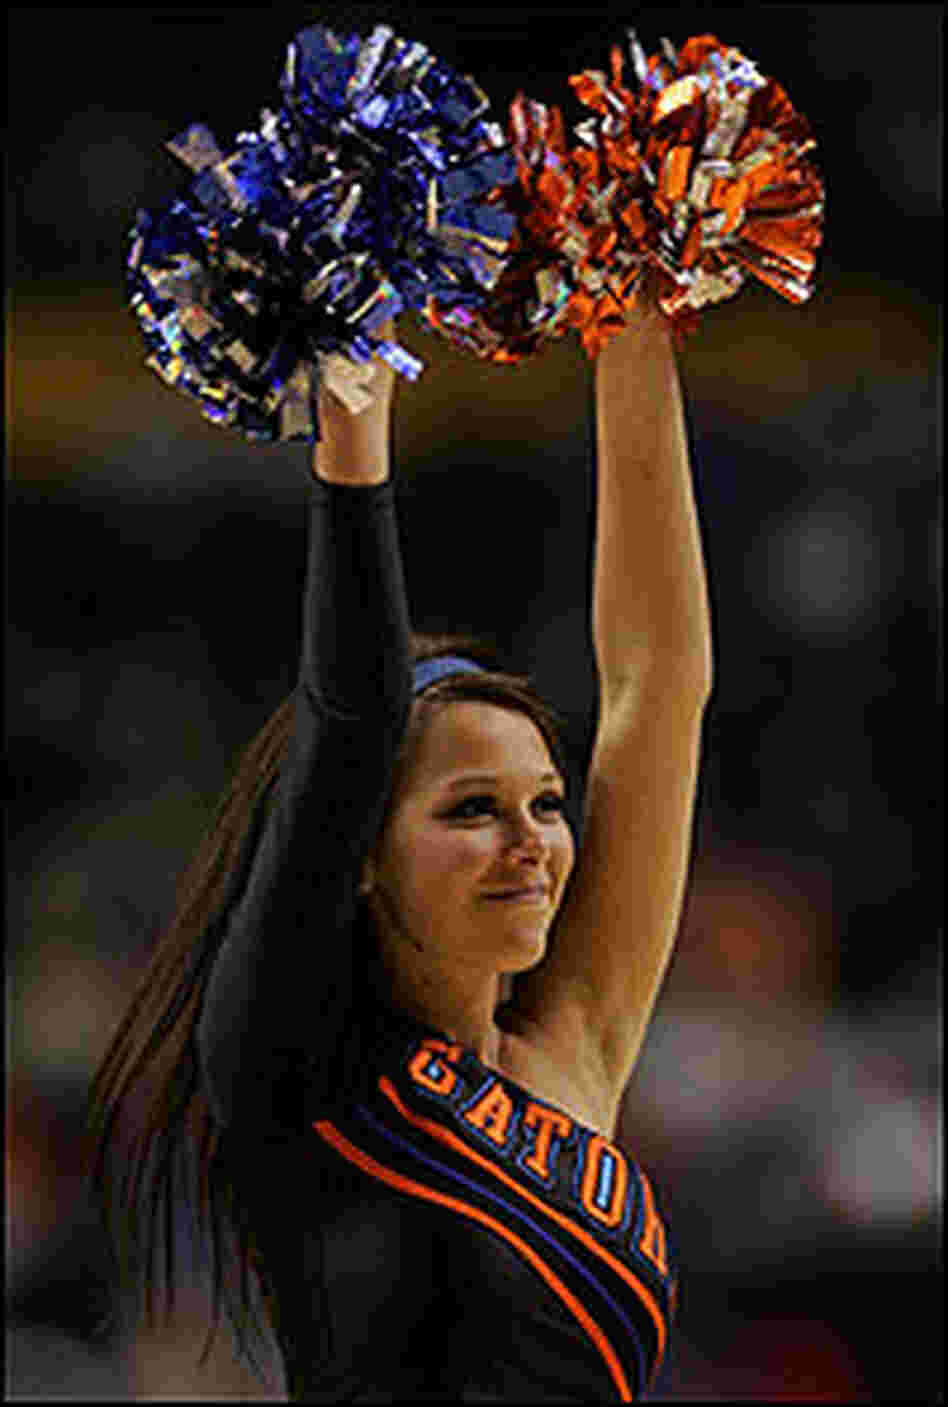 A Florida Gator cheerleader.